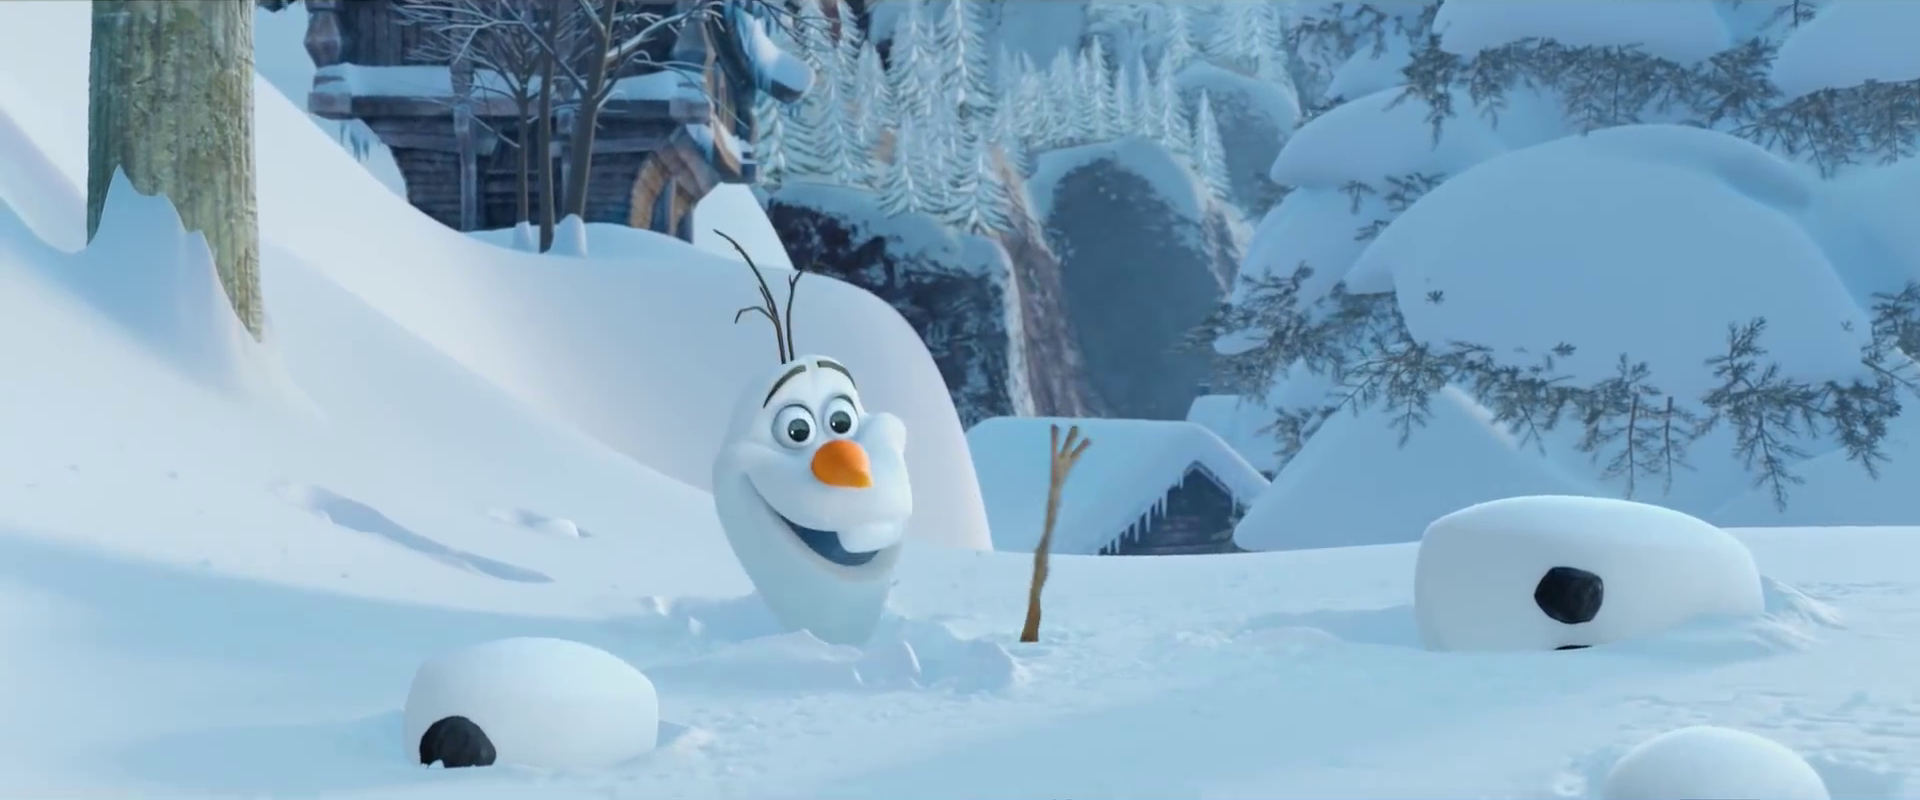 Olaf In The Promotional Ad For Sky Movies.